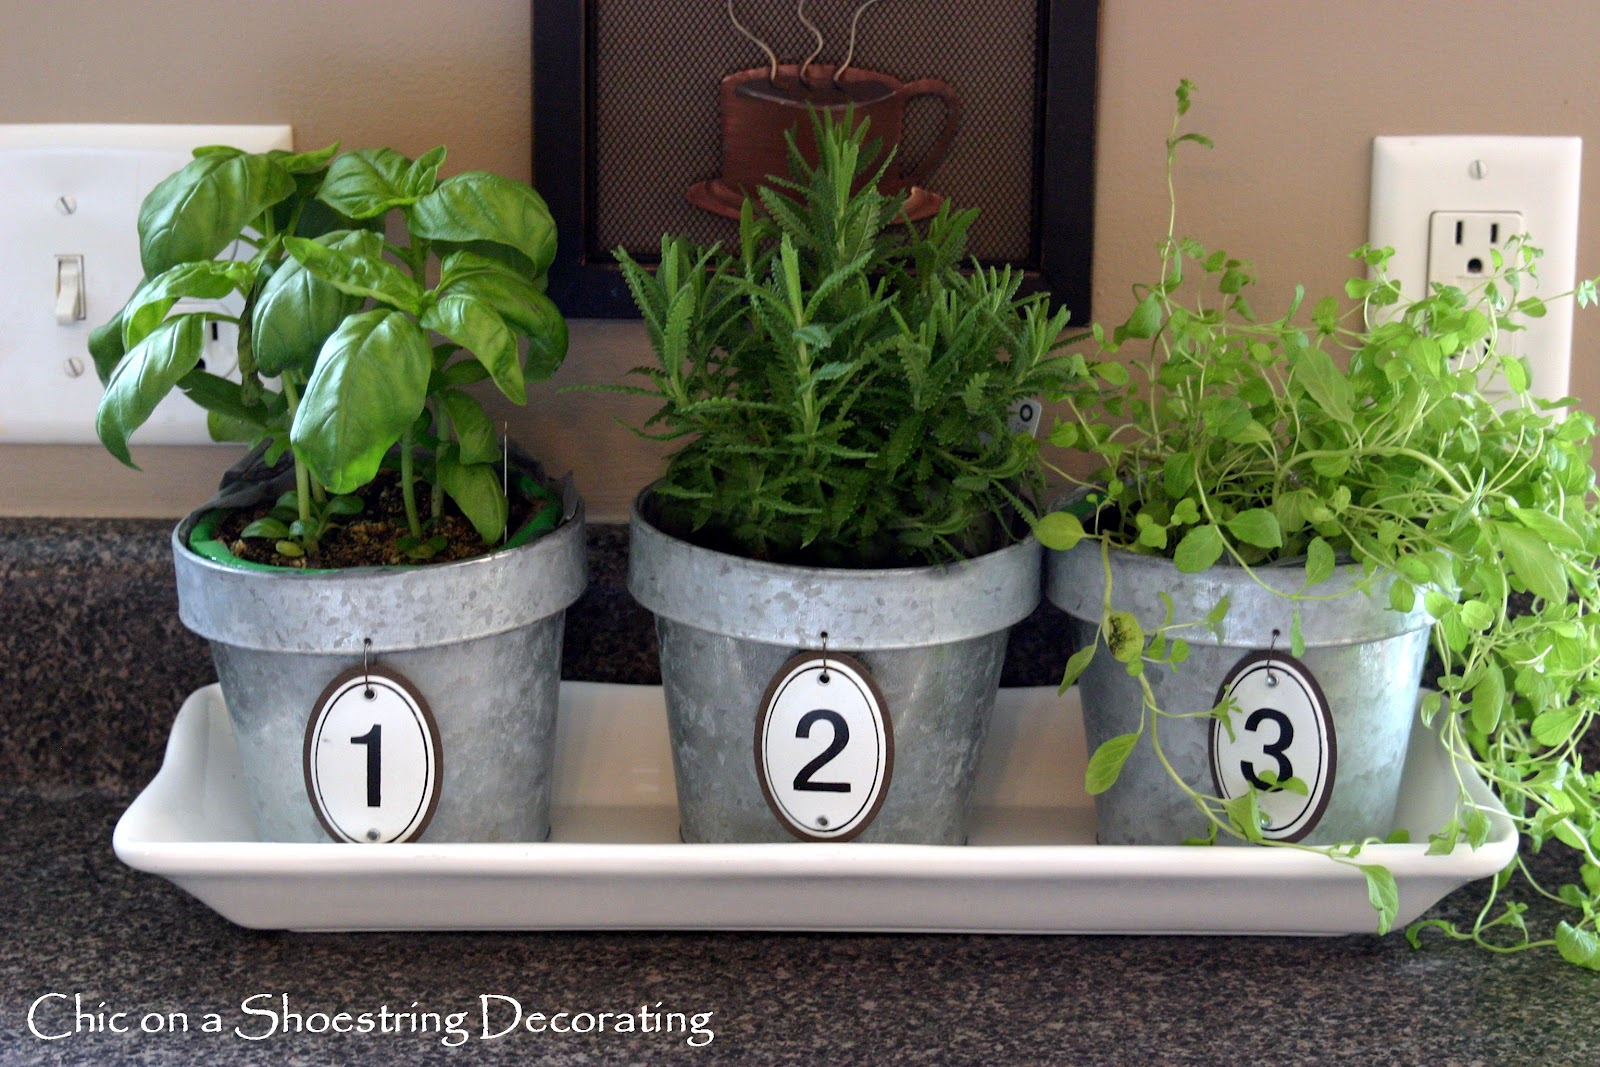 Chic On A Shoestring Decorating Kitchen Herbs In Numbered